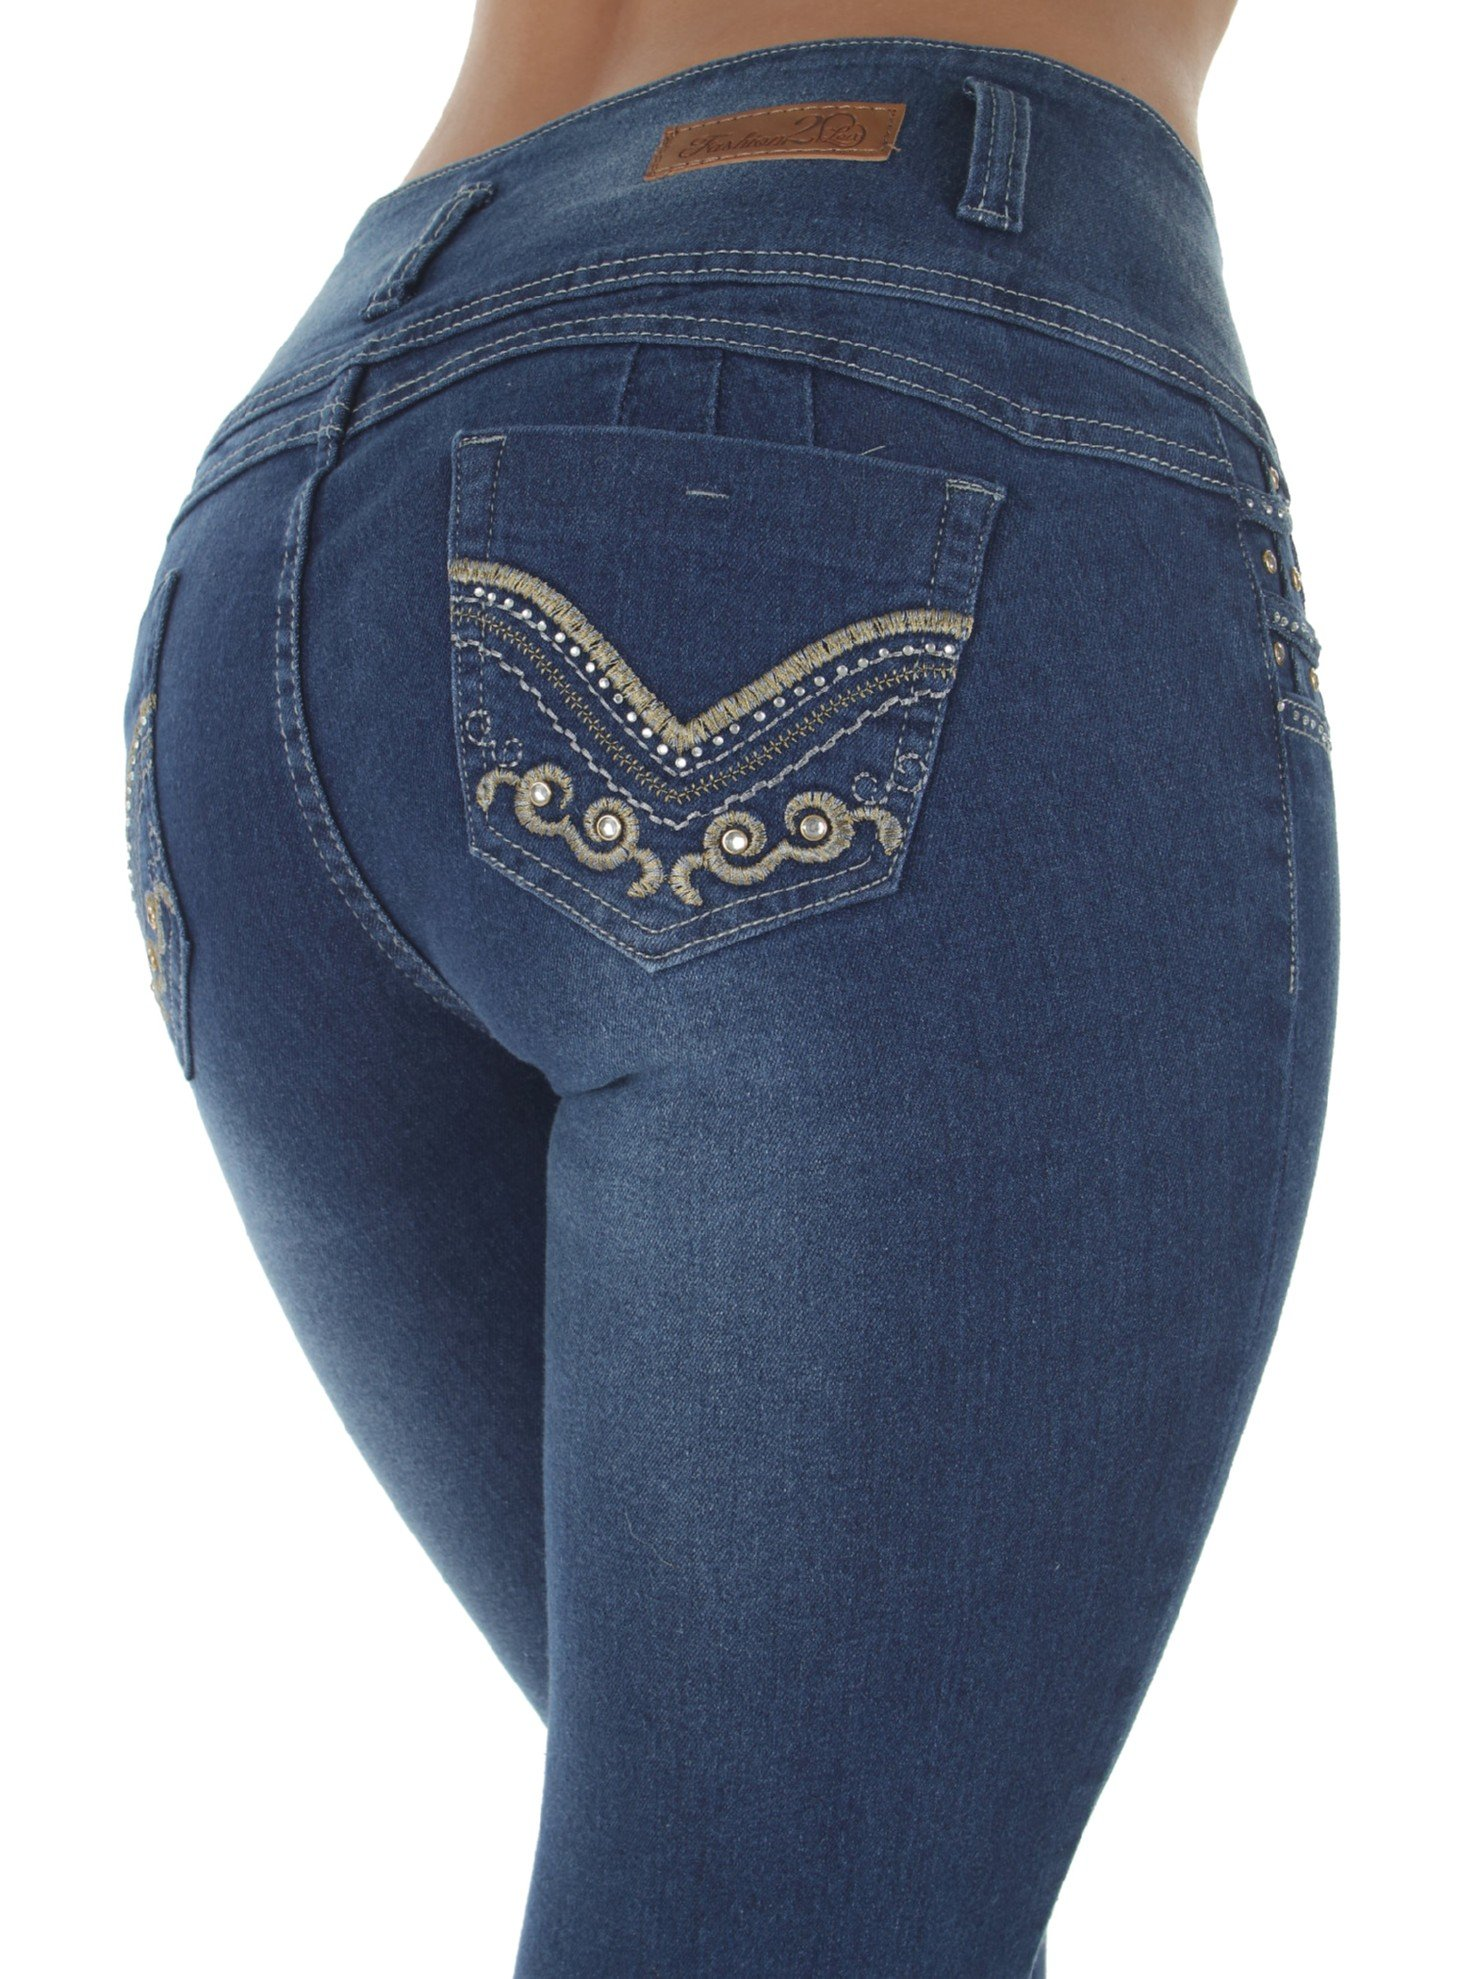 Style G389– Colombian Design, High Waist, Butt Lift, Levanta Cola, Skinny Jeans in M. Blue Size 15